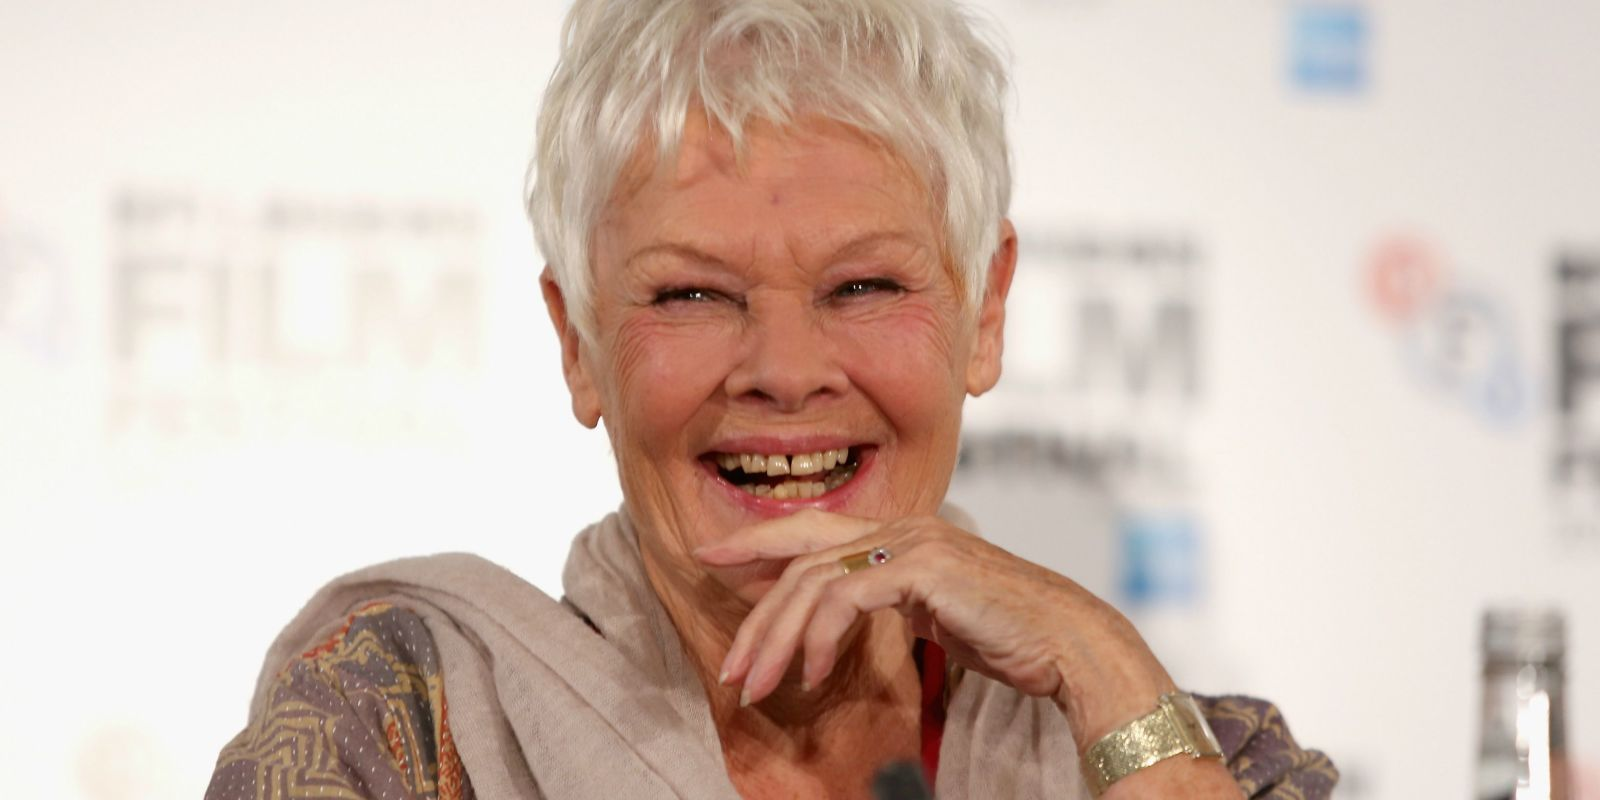 Judi Dench Gets Her First Tattoo at 81 Years Old - Photos